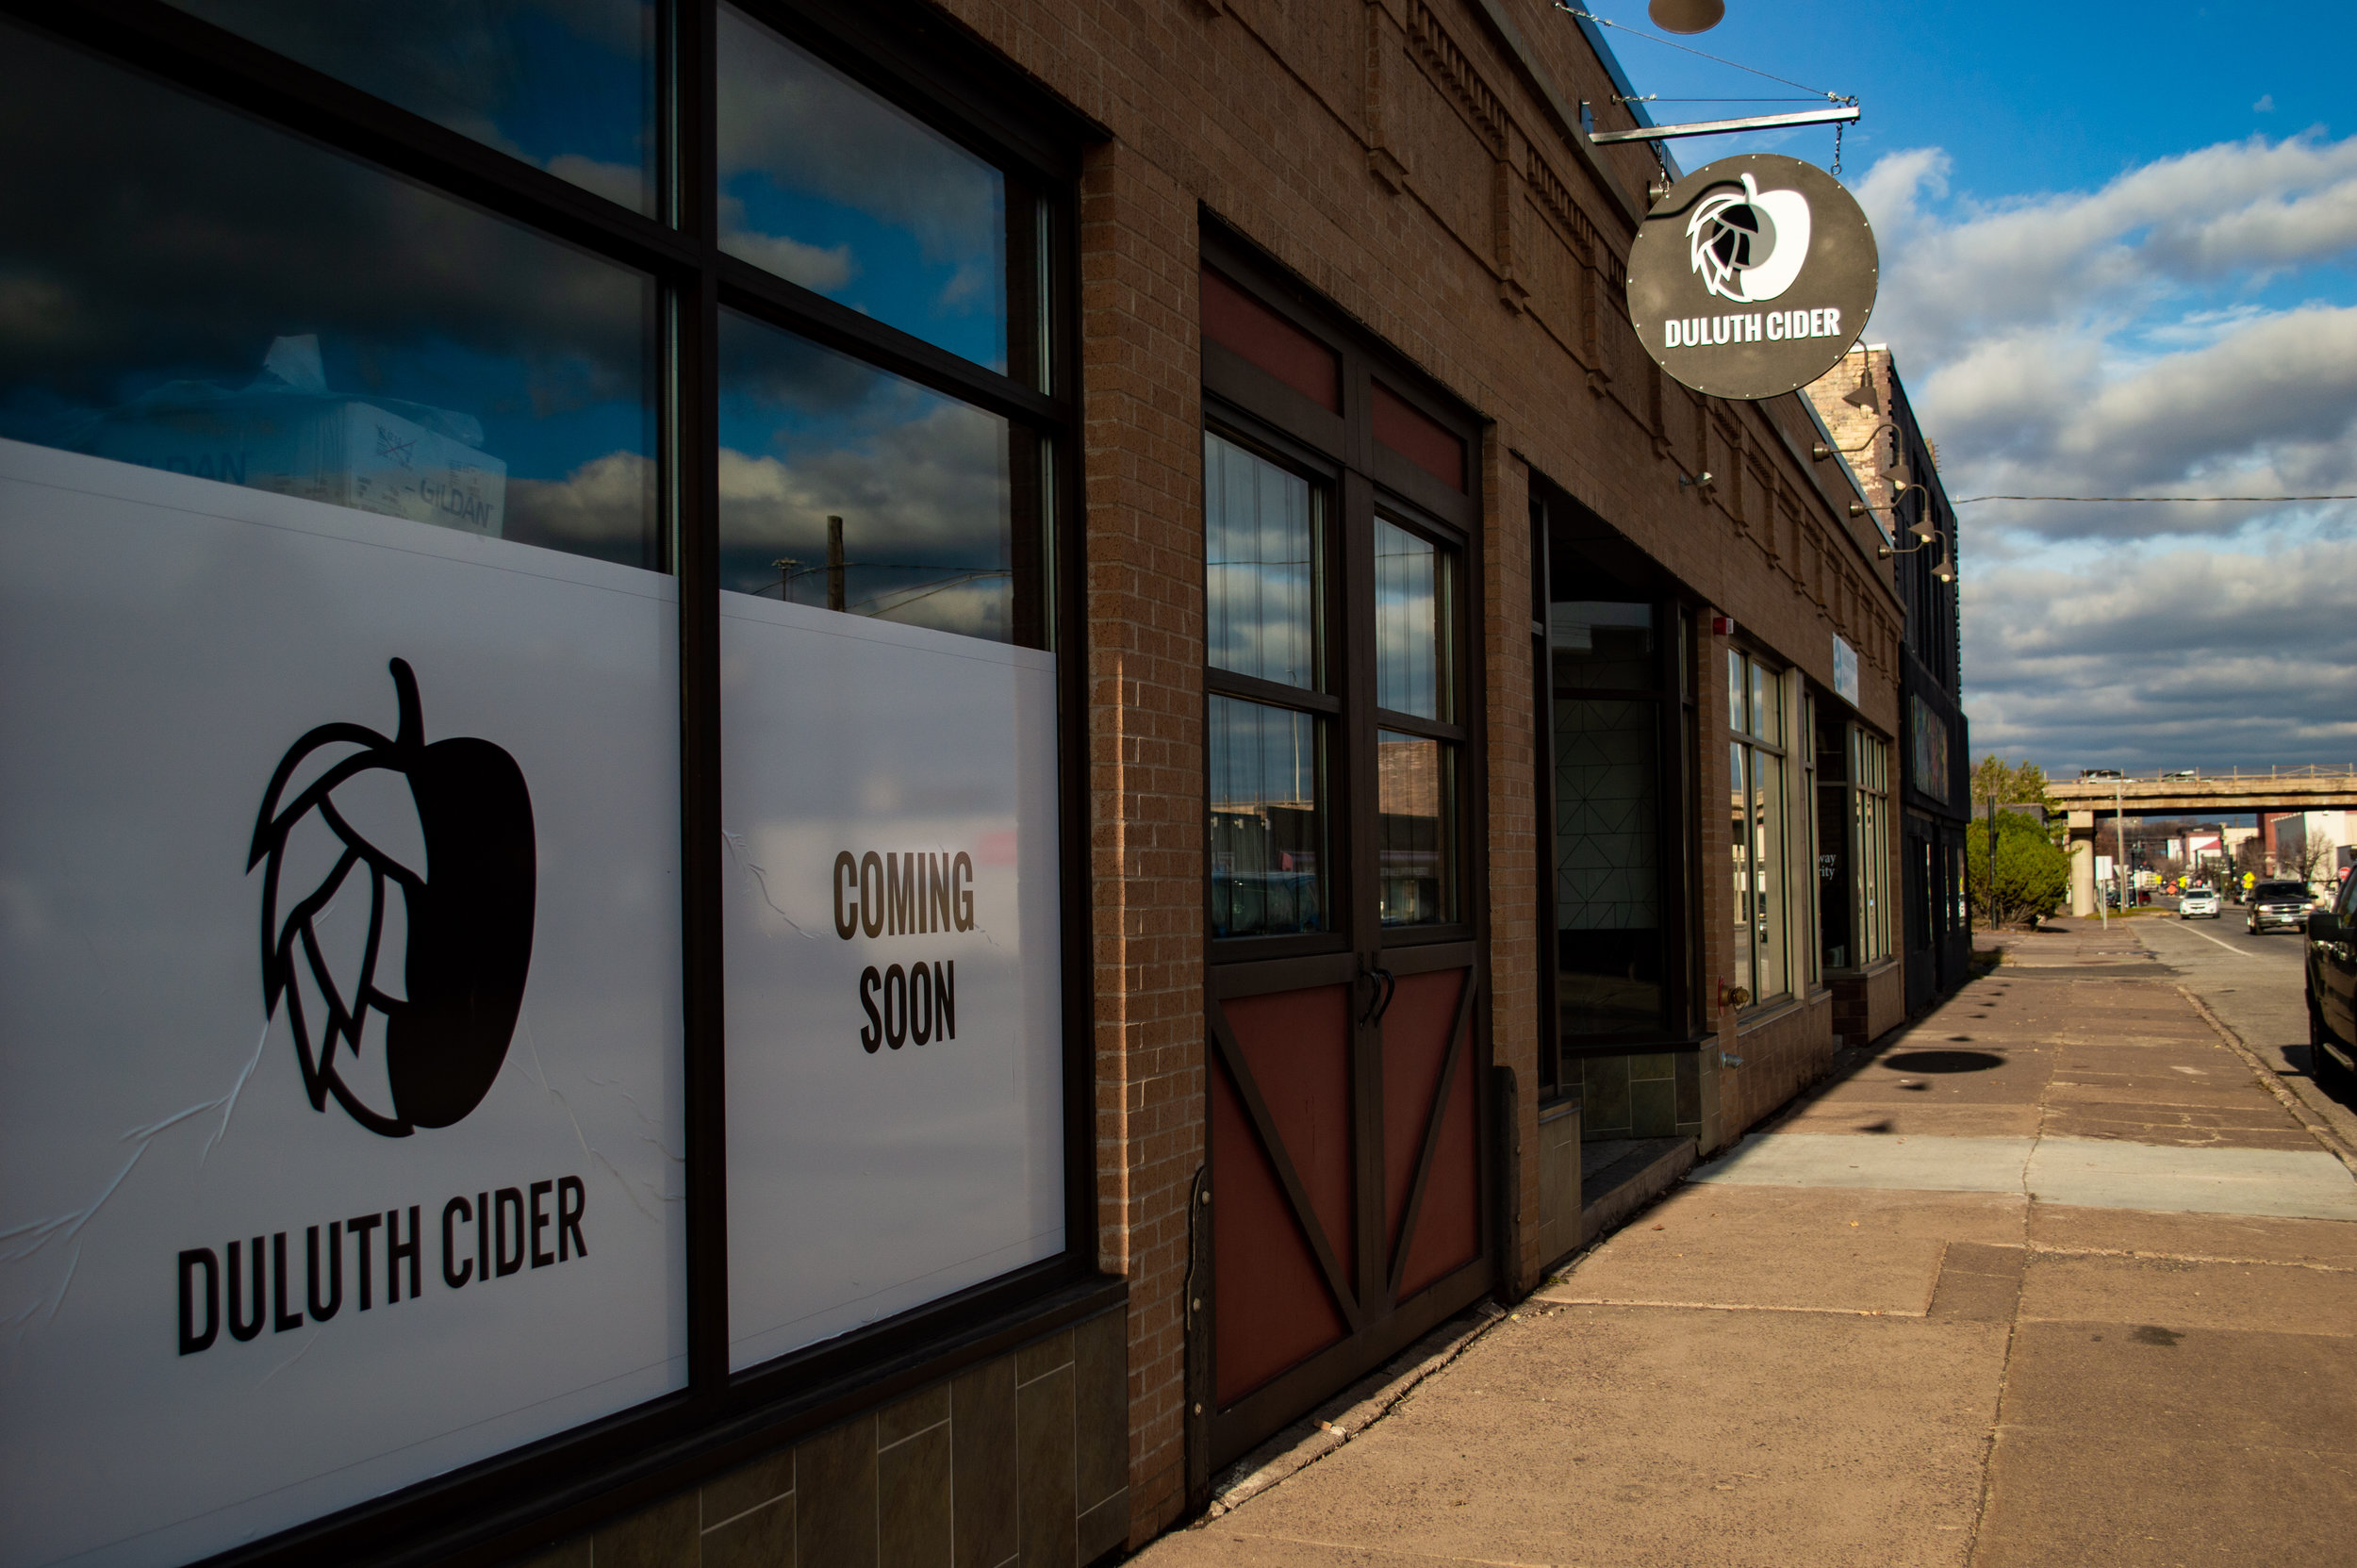 Outside of Duluth Cider located on W Superior St. Photo by: Jake Barnard